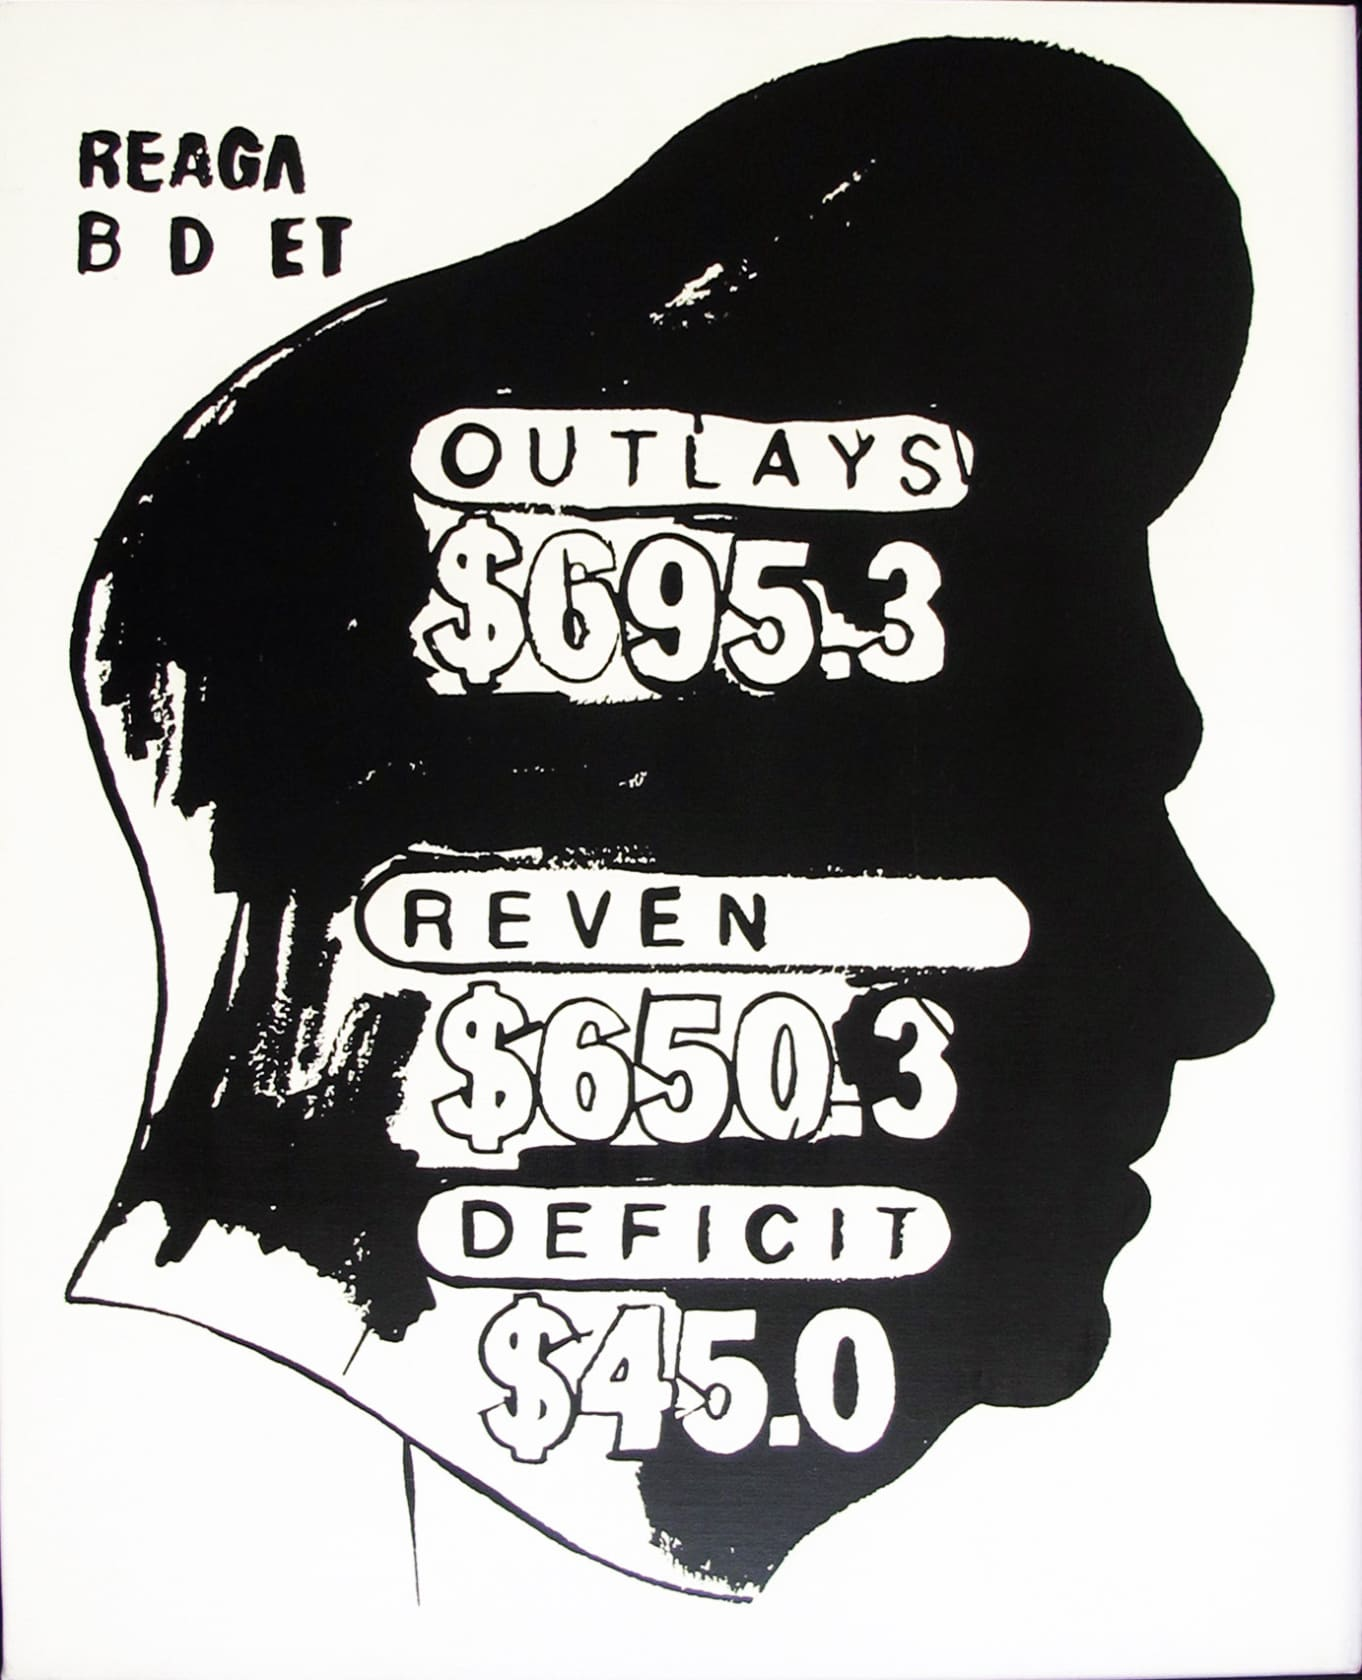 Andy Warhol, Reagan Budget Deficit (Positive), 1985-86